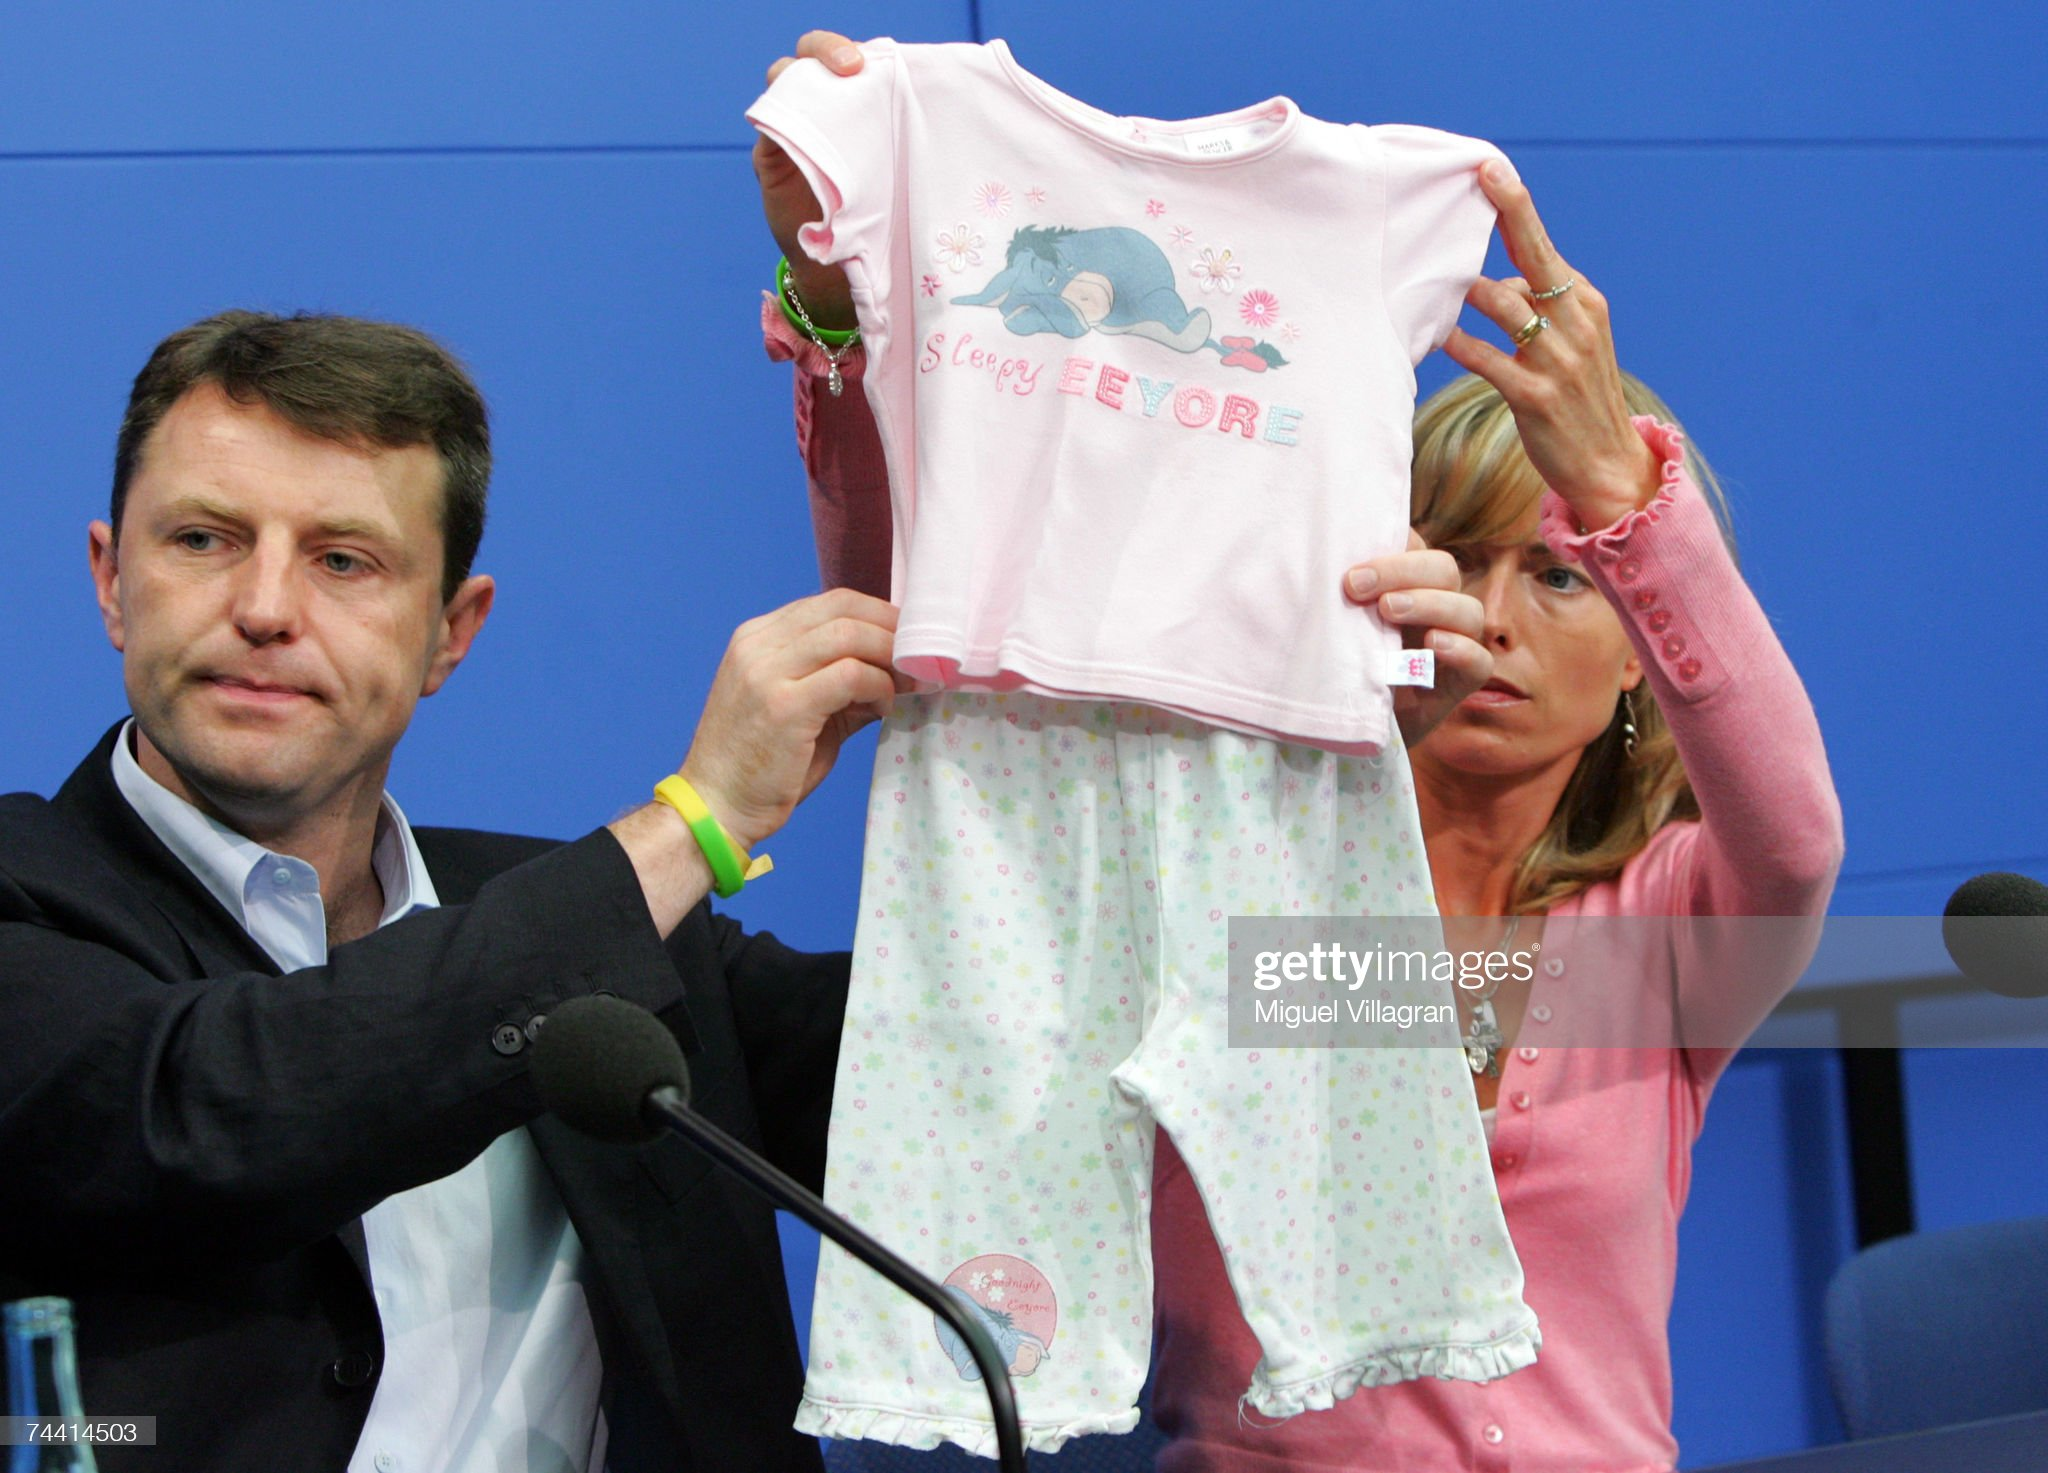 Dr Martin Roberts - 'A Nightwear Job' - Page 15 Kate-and-gerry-mccann-the-parents-of-the-missing-4yearold-british-picture-id74414503?s=2048x2048